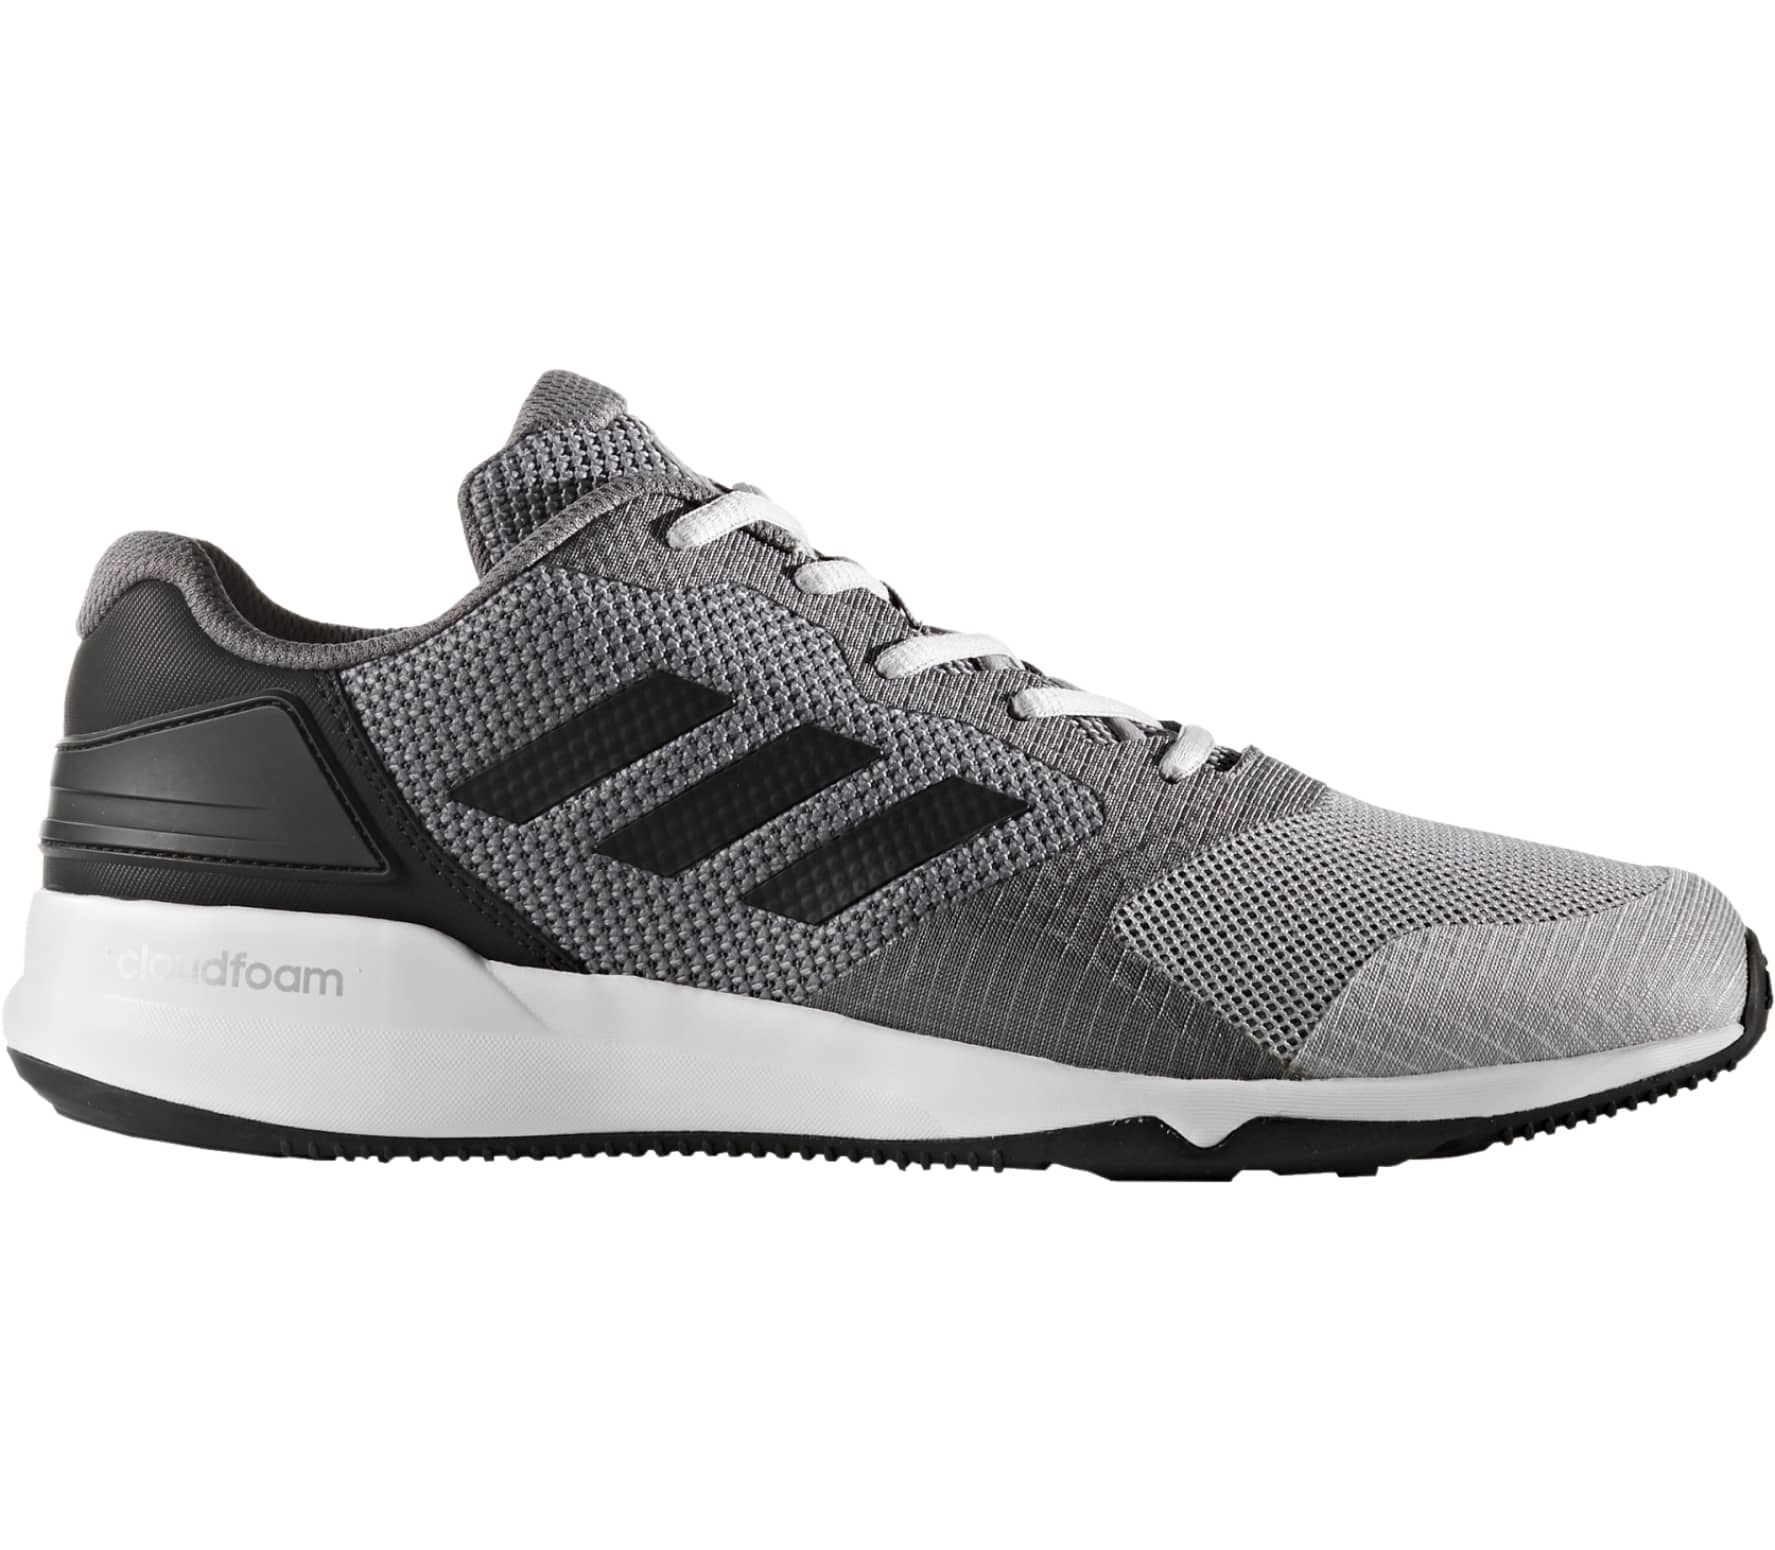 new arrival 26db4 6f1c3 Adidas - Crazy Train 2 Cloudfoam Hommes Chaussure d